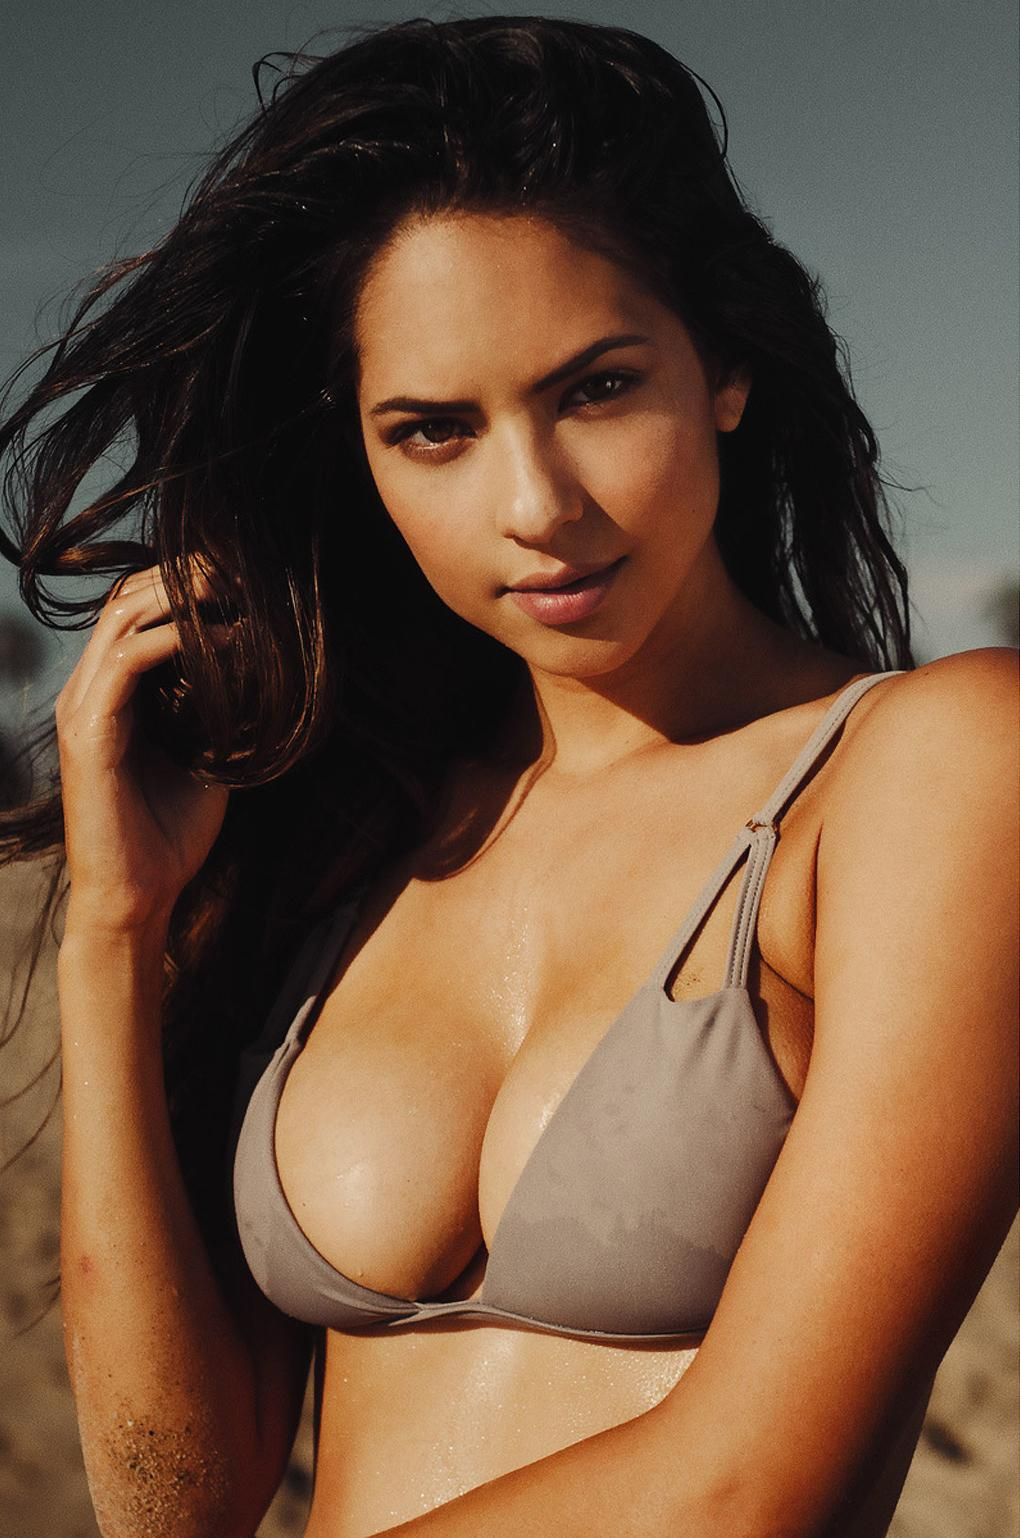 Christen Harper - By Allen Chiu